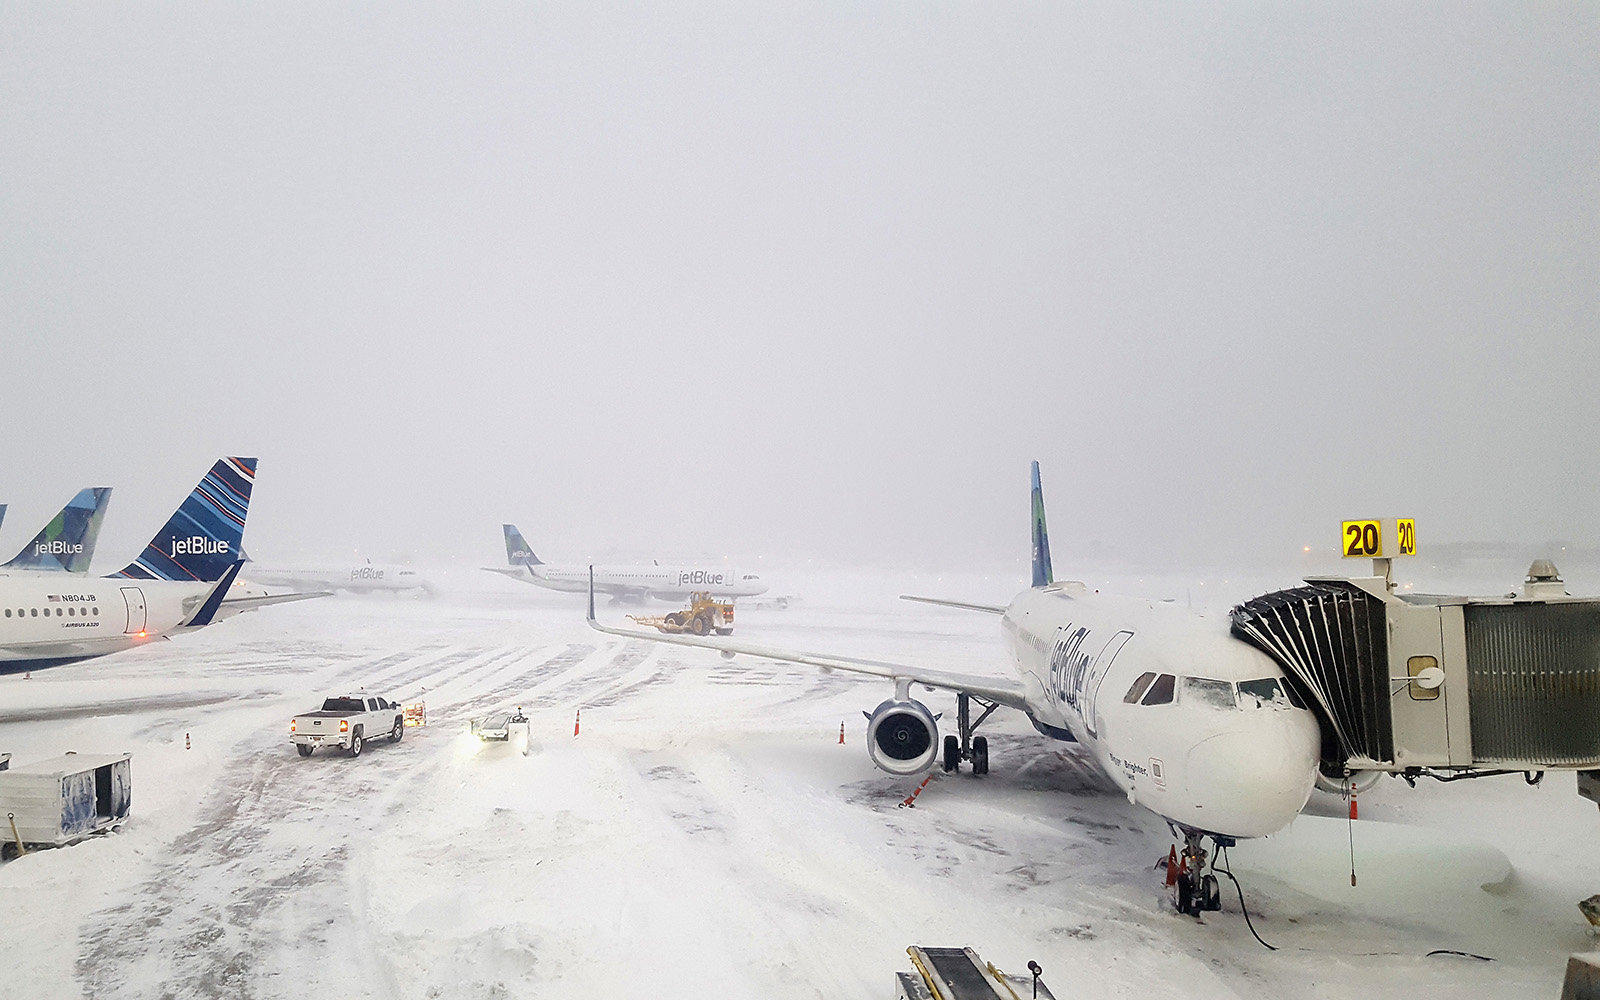 Planes Collide At Jfk Airport Leading To Even More Delays